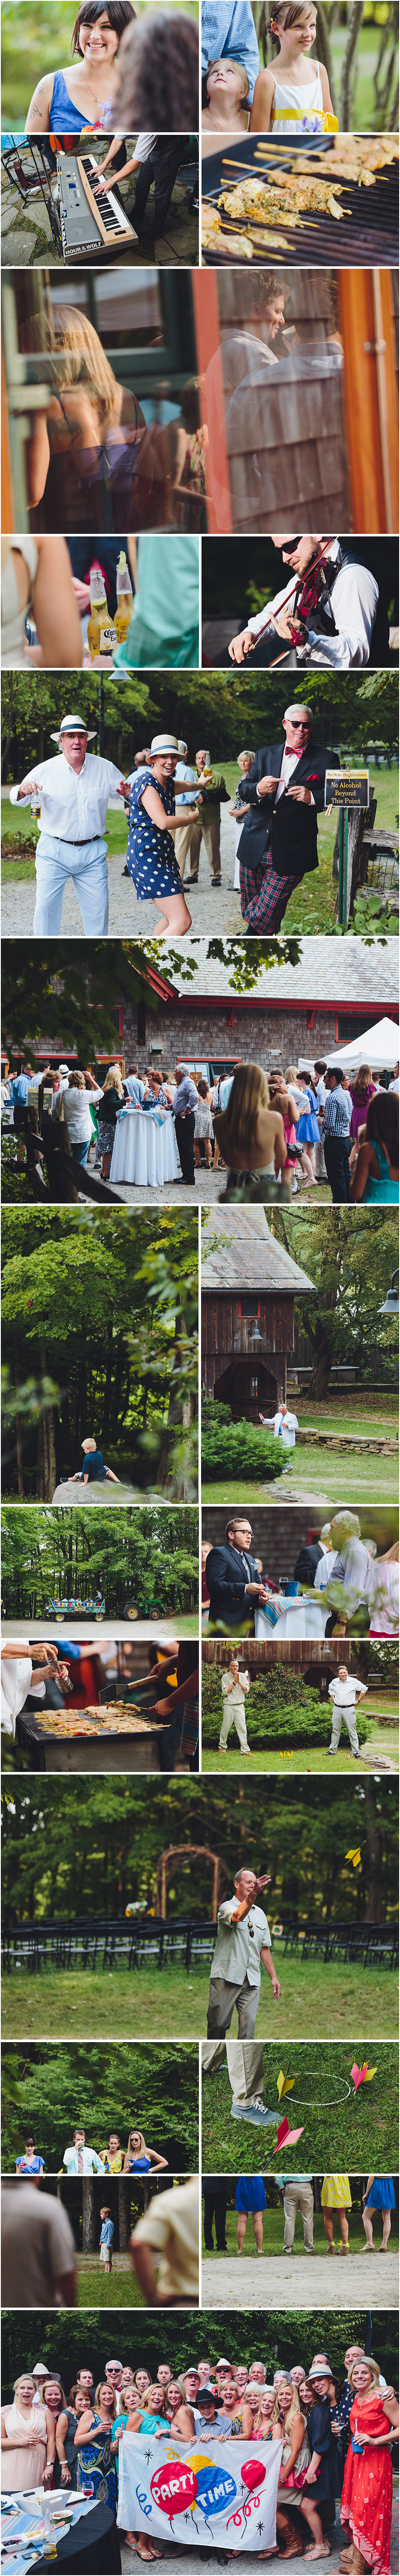 STONEWALL FARM KEENE WEDDING PHOTOGRAPHER